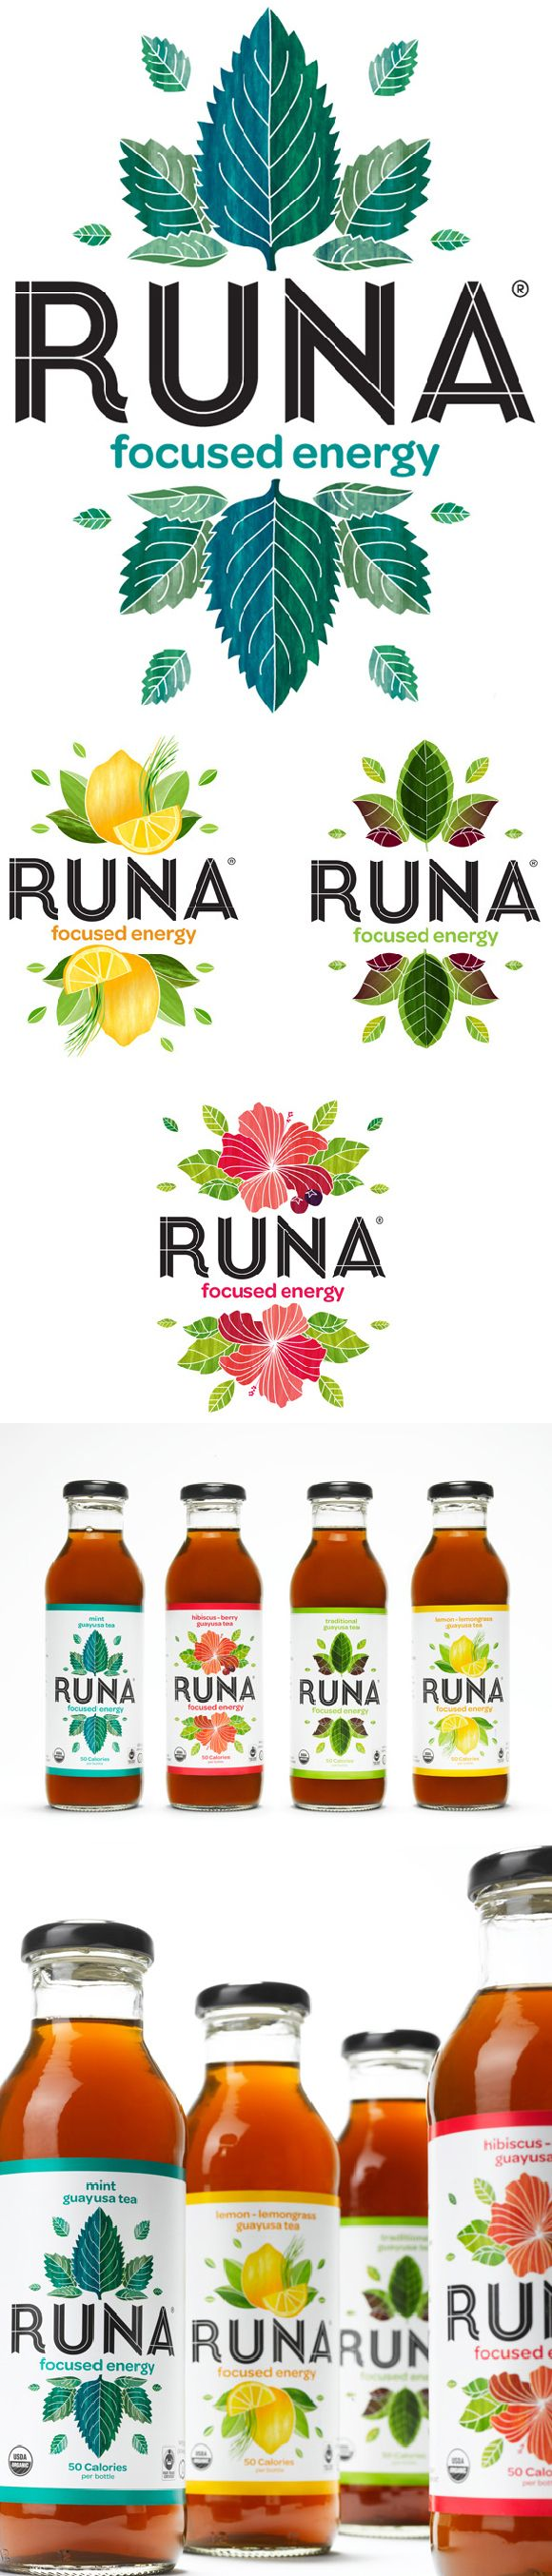 RUNA | Ideas that inspire BENBEN